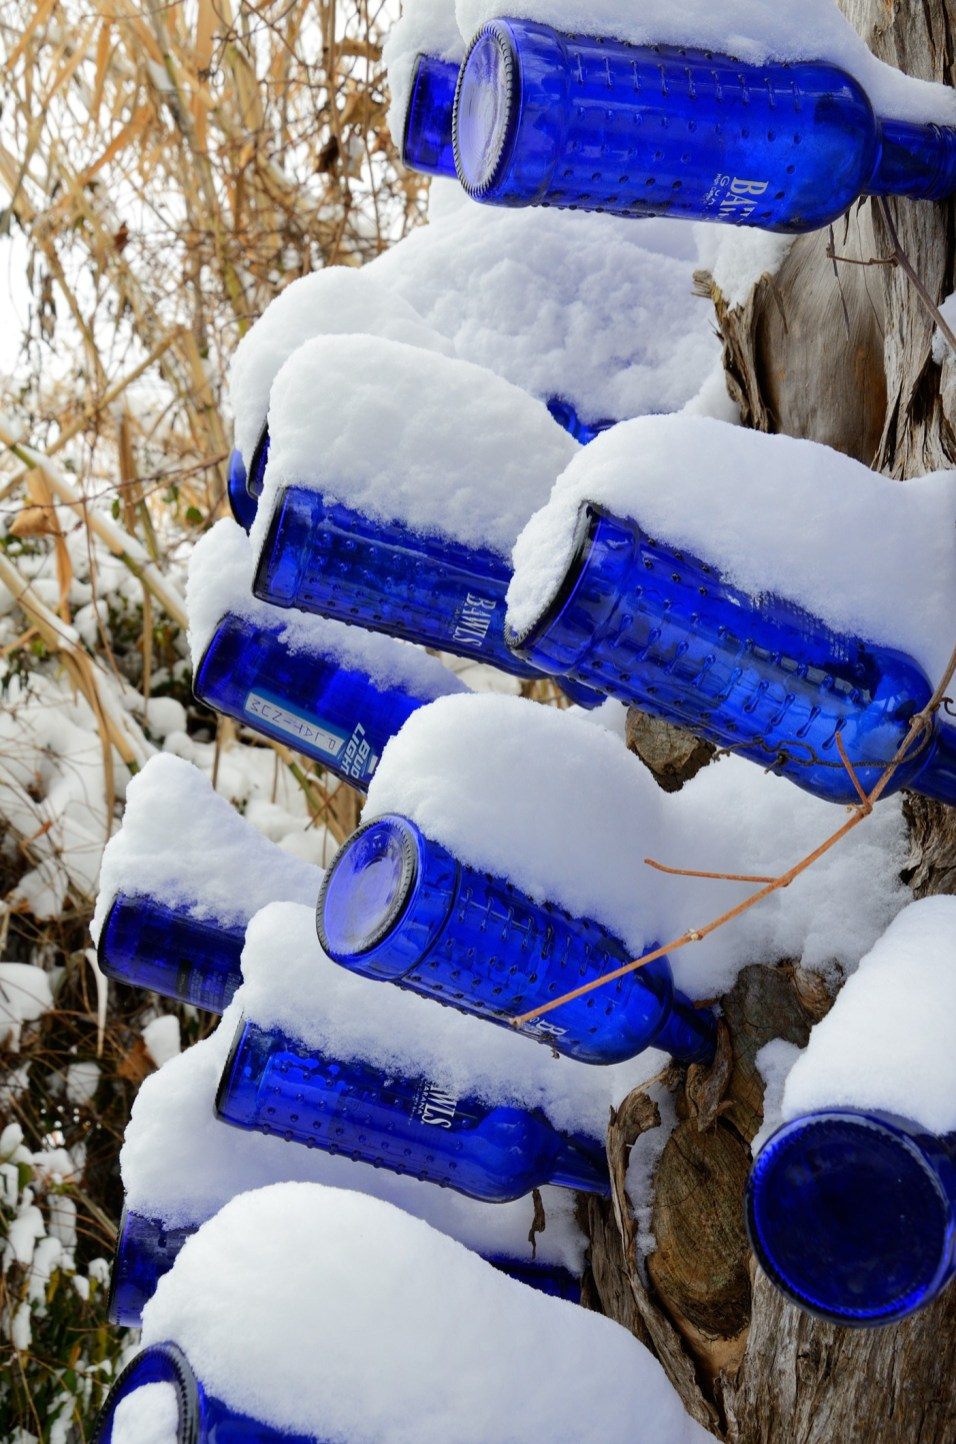 More snow on blue bottles. Copyright © 2013 Gary Allman, all rights reserved.